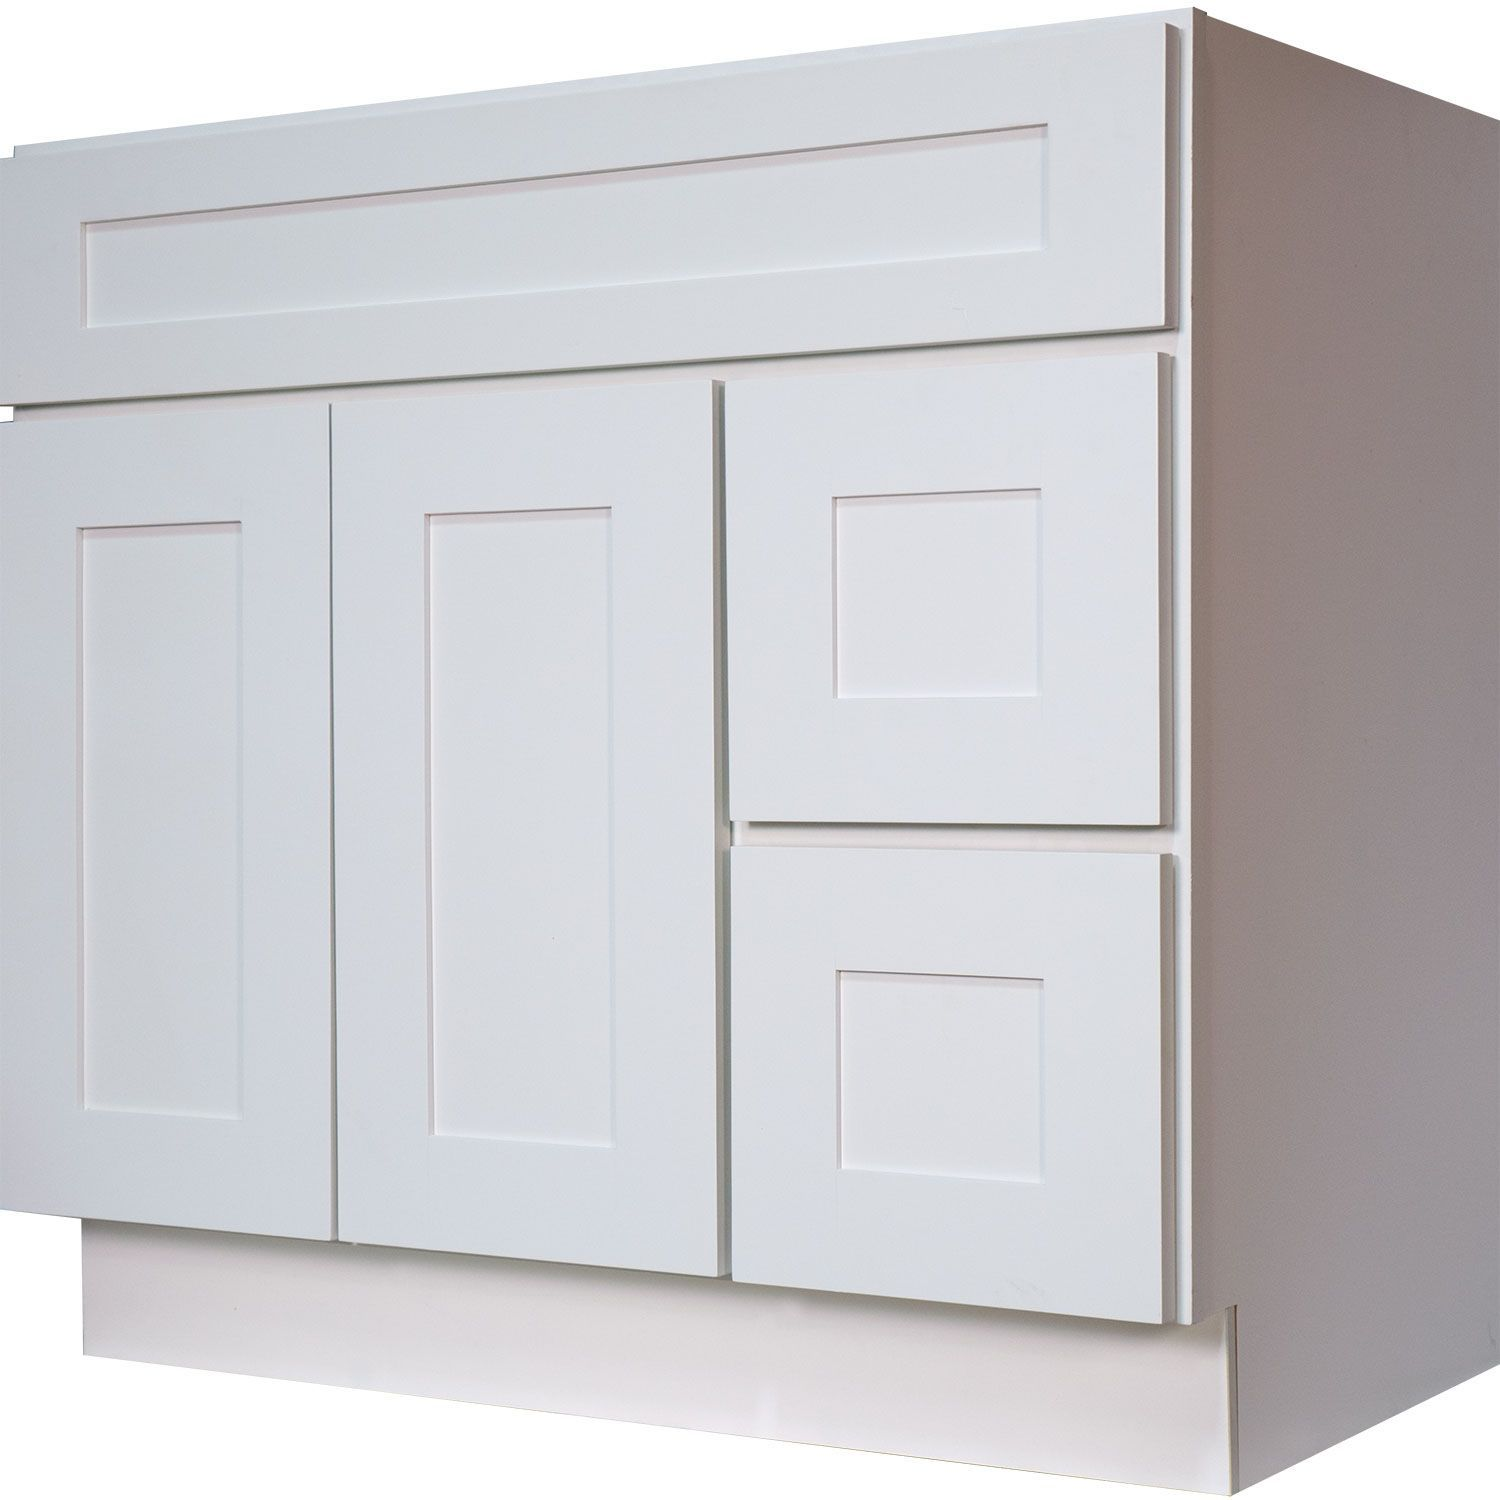 36 Inch Bathroom Vanity Single Sink Cabinet in Shaker White with ...